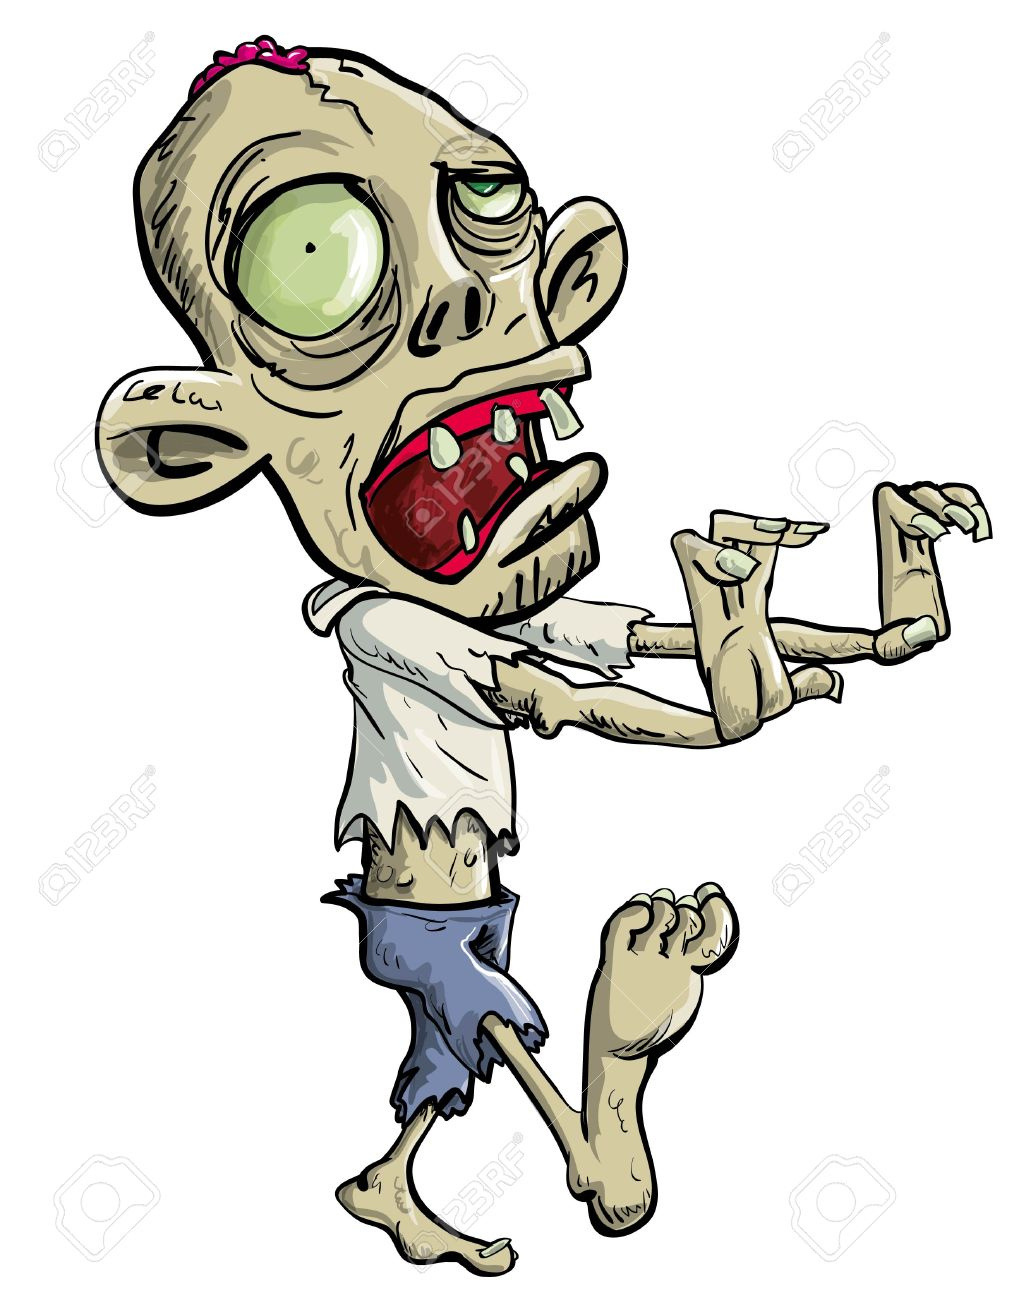 Big head clipart png free stock Zombie Creeping With Big Head Royalty Free Cliparts, Vectors, And ... png free stock